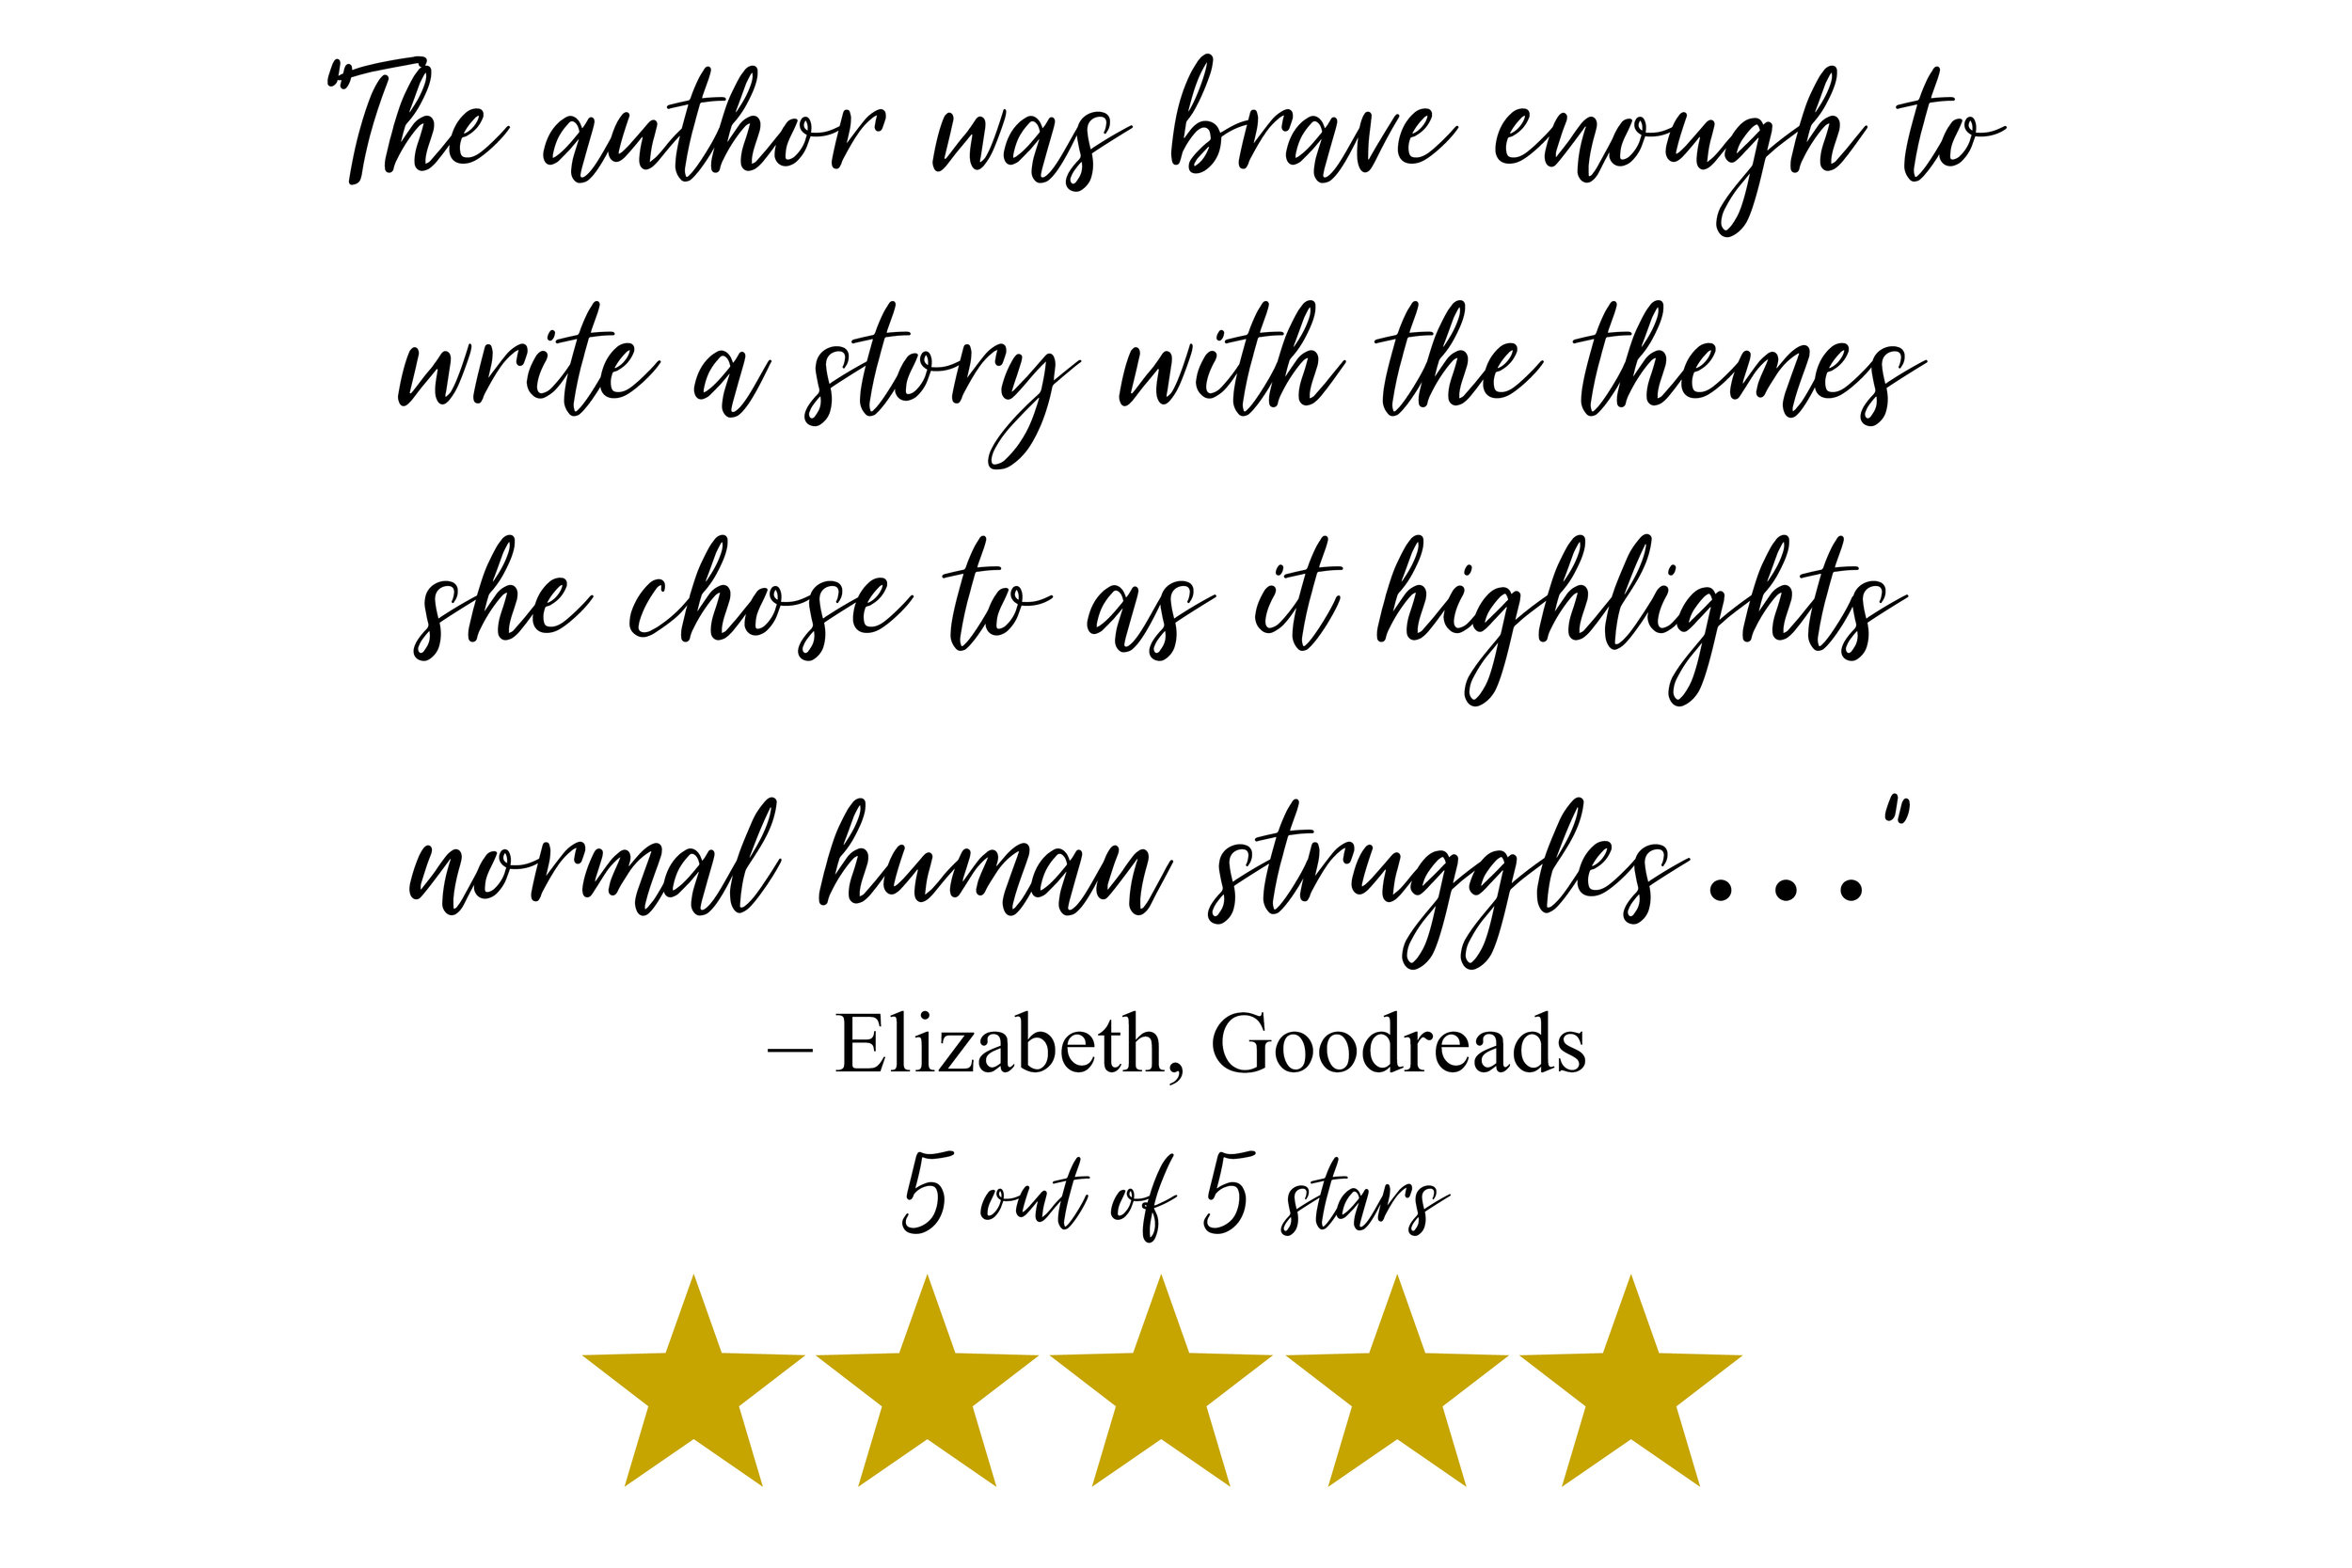 """The author was brave enough to write a story with the themes she chose to as it highlights normal human struggles…"" – Elizabeth, Goodreads"